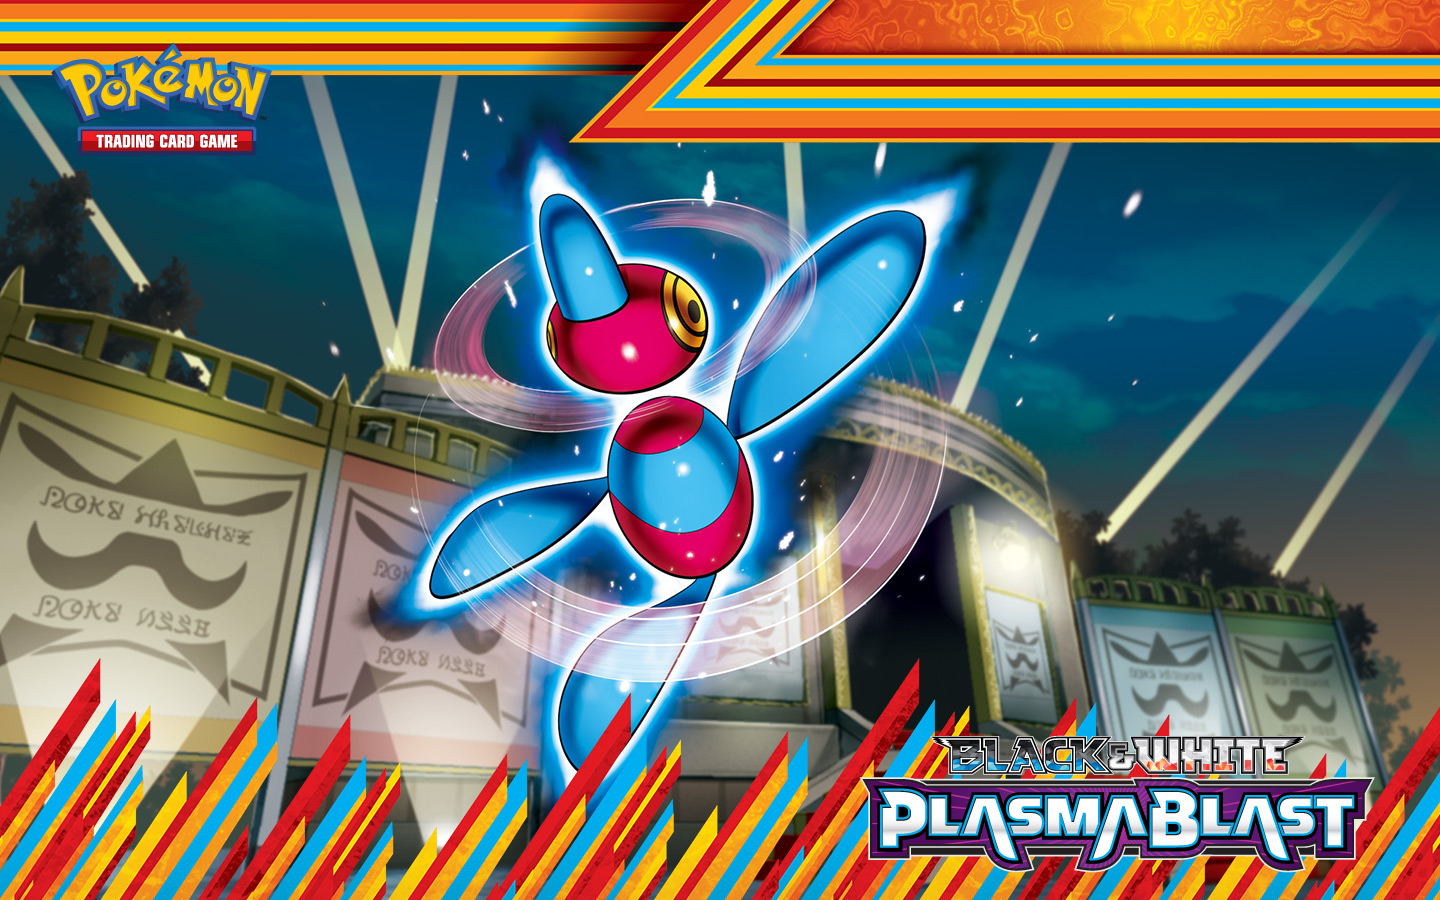 Plasma Blast Porygon-Z Wallpaper